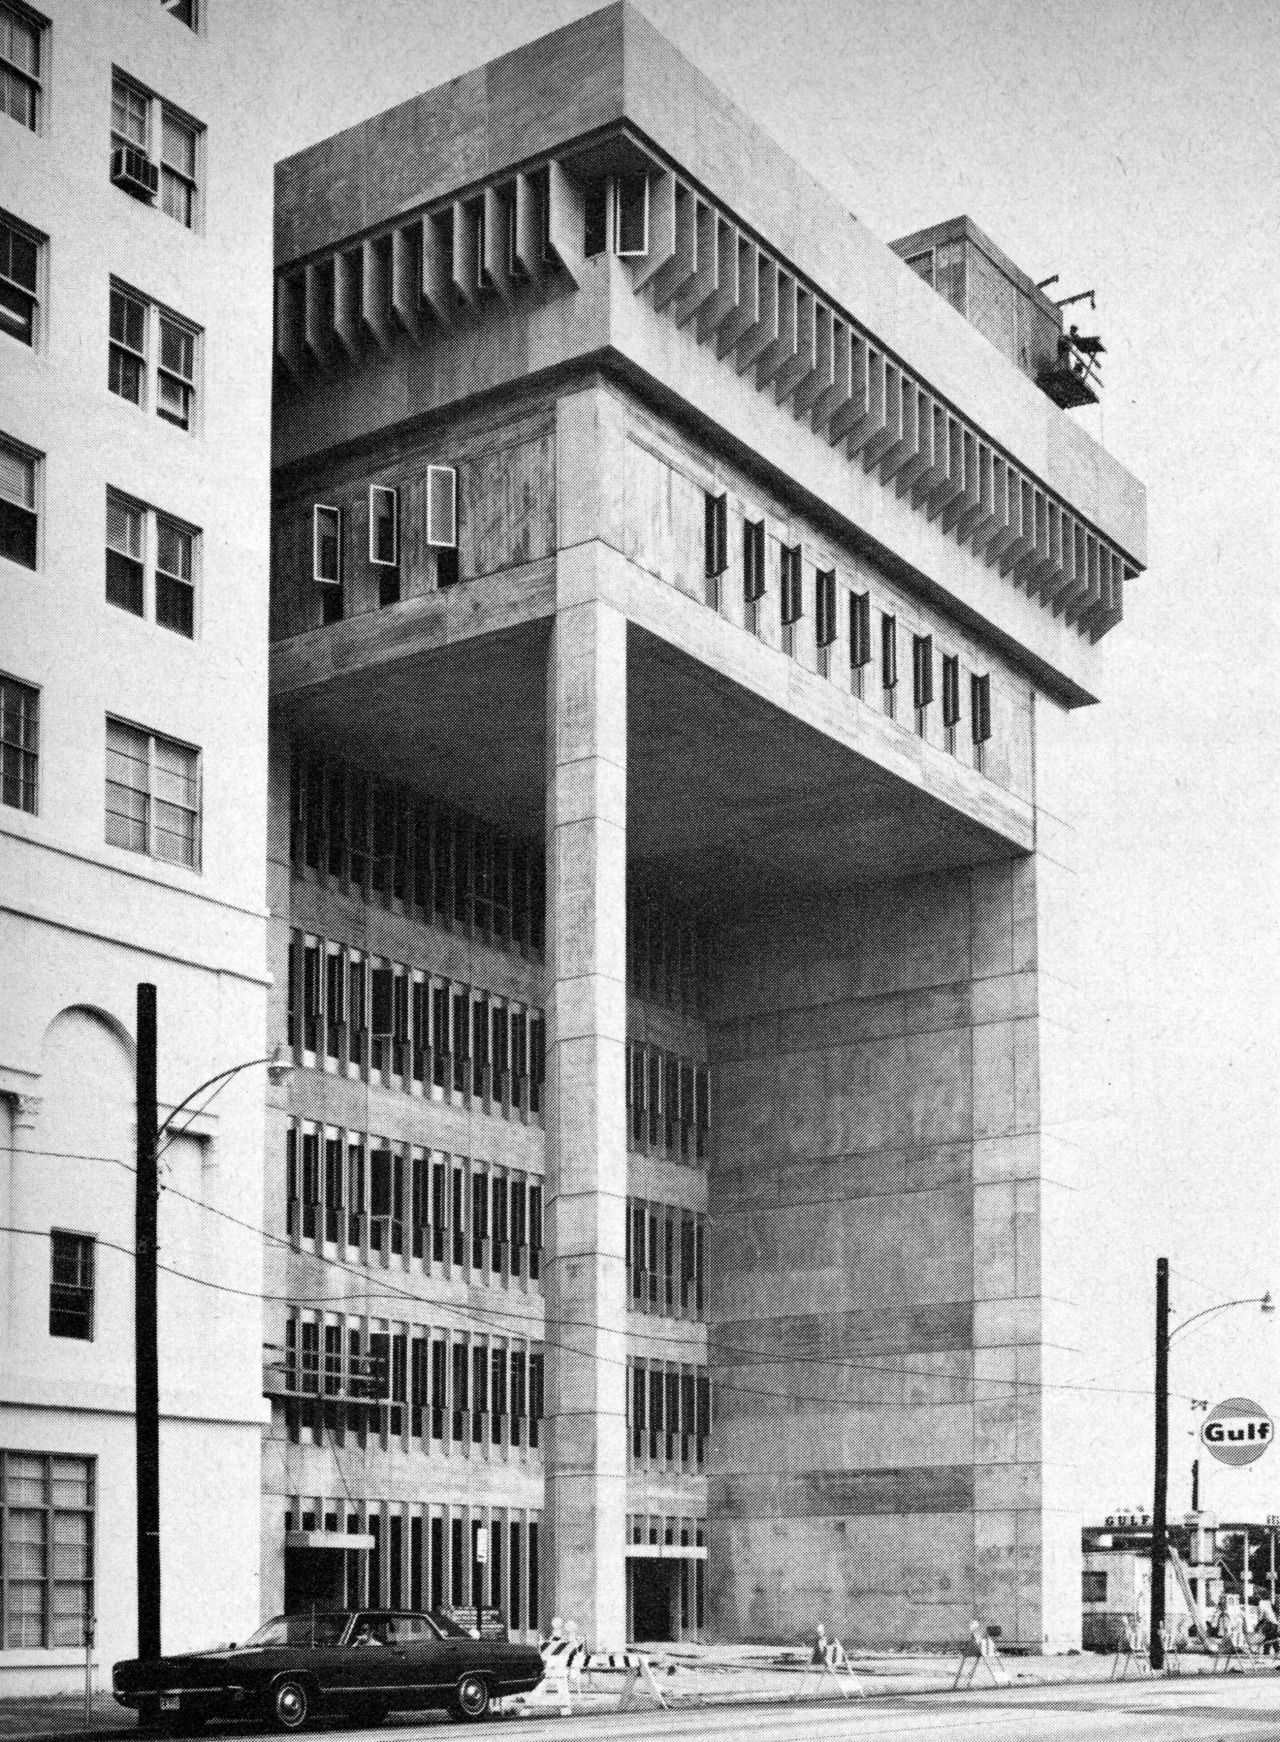 Charles R. Drew Junior High School, Miami, Florida, 1960s (Herbert H